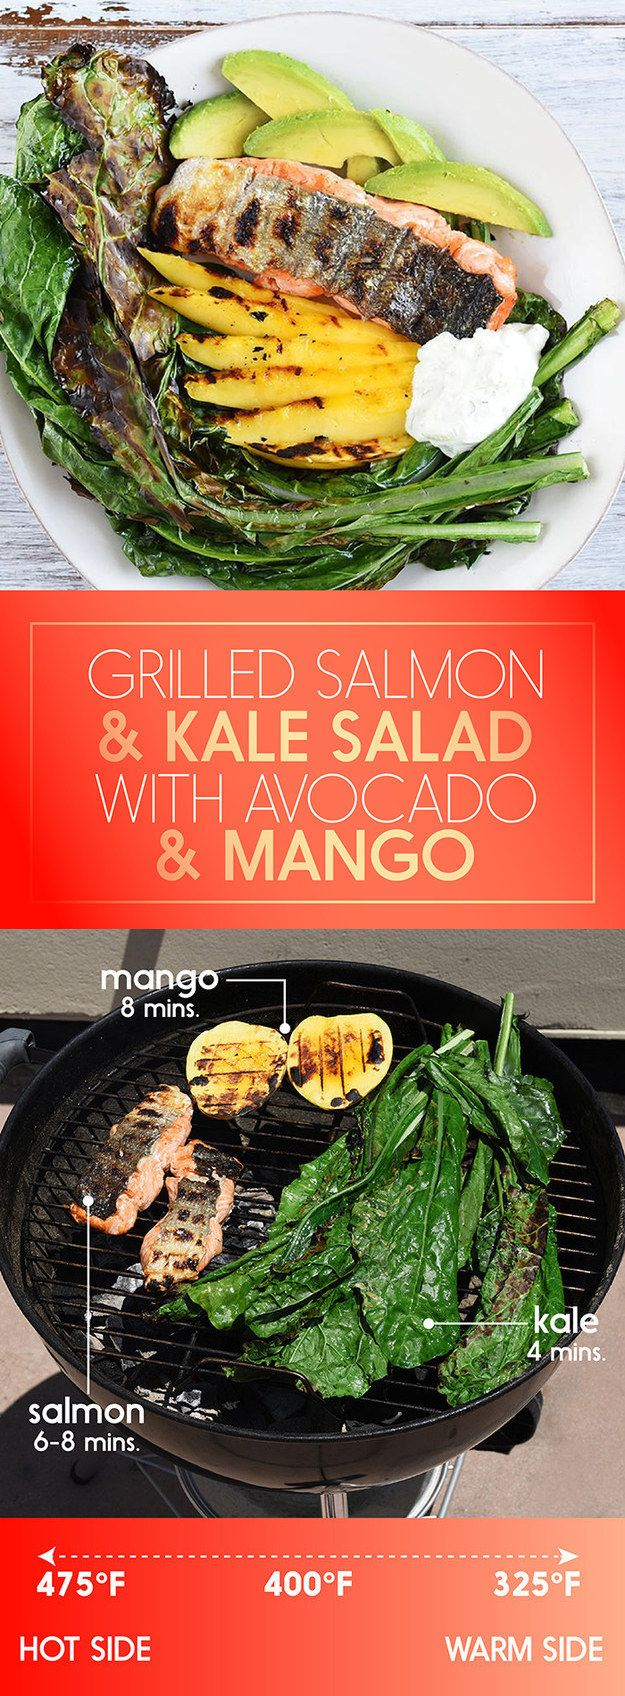 Grilled Salmon and Kale Salad with Mango and Avocado | 5 30-Minute Dinners To Grill This Week